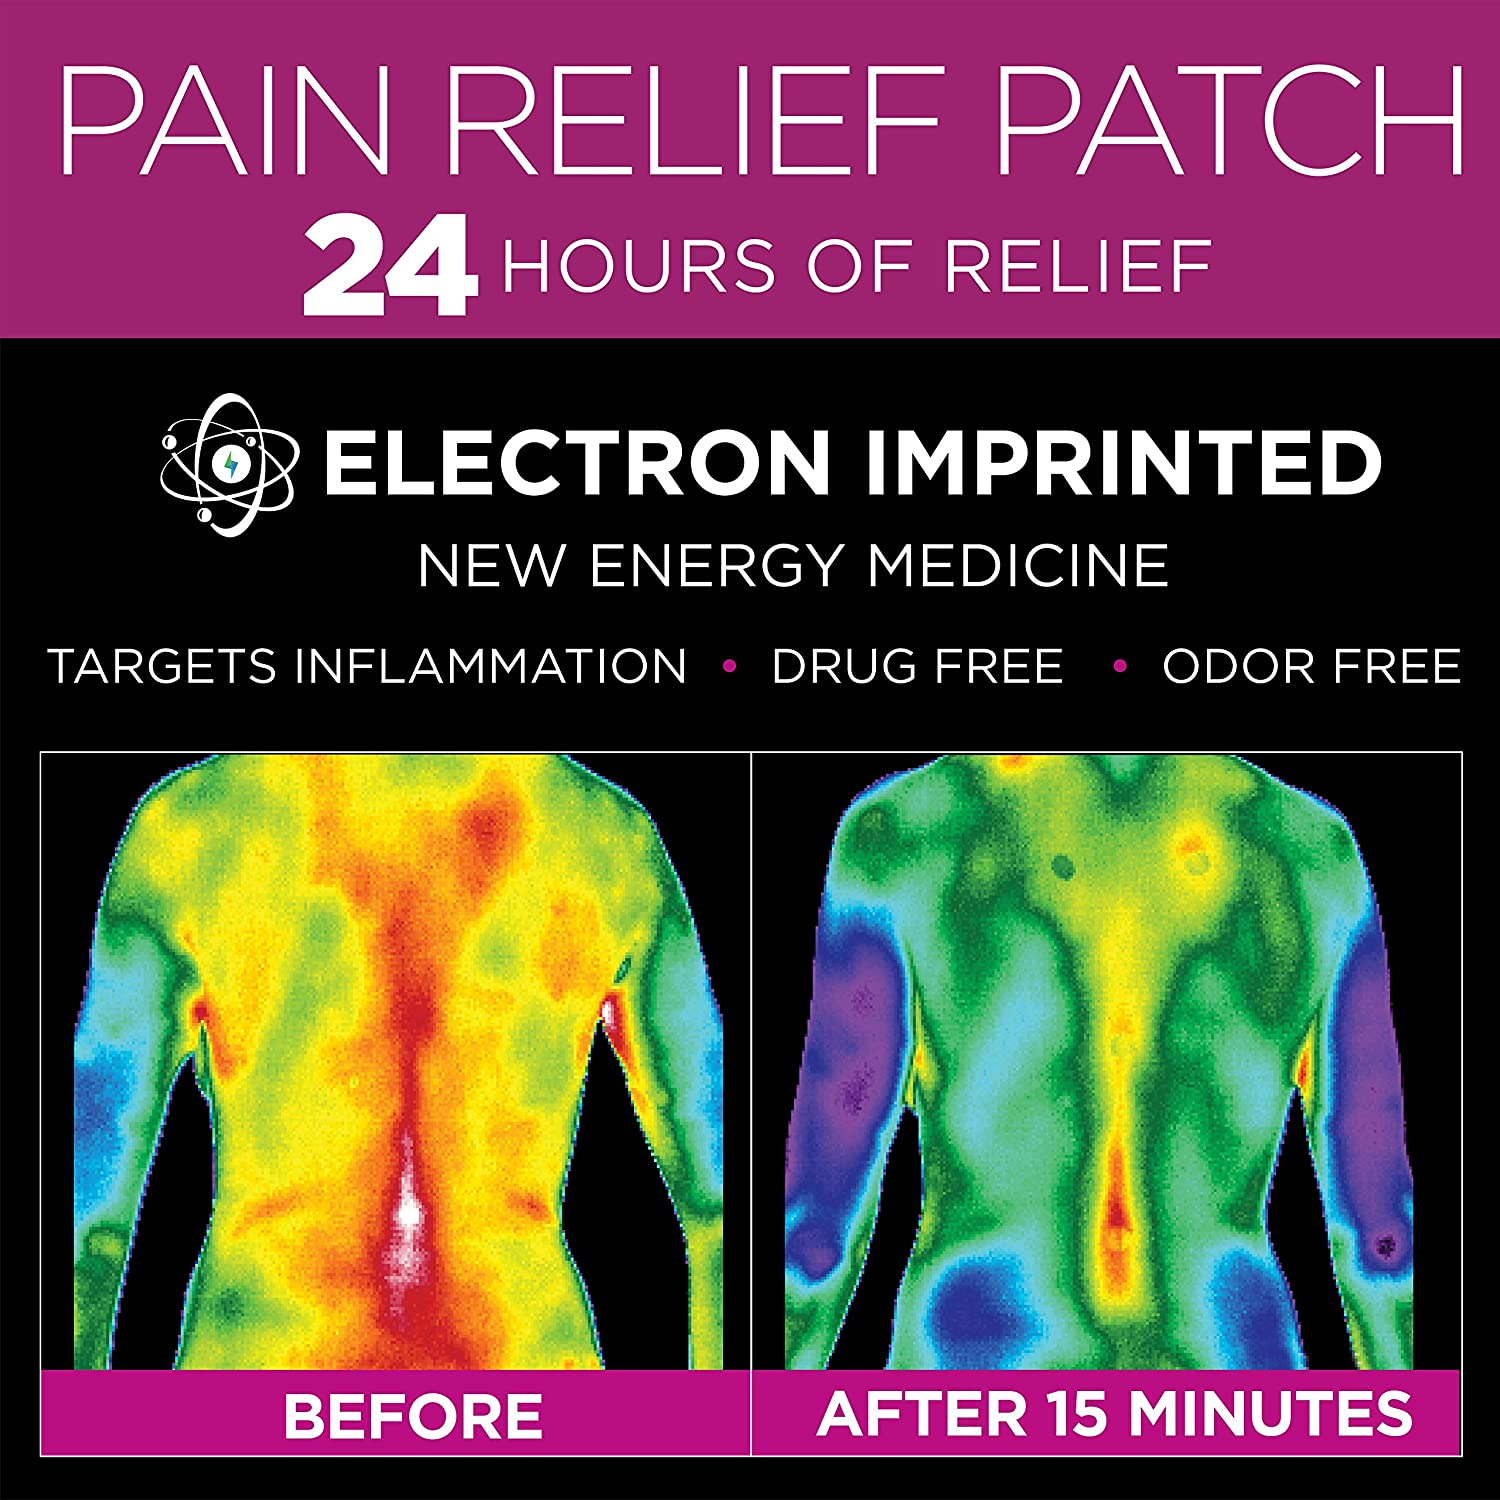 91yAMITxemL._SL1500_ amazon com luminas pain relief patch (for joint pain, back pain